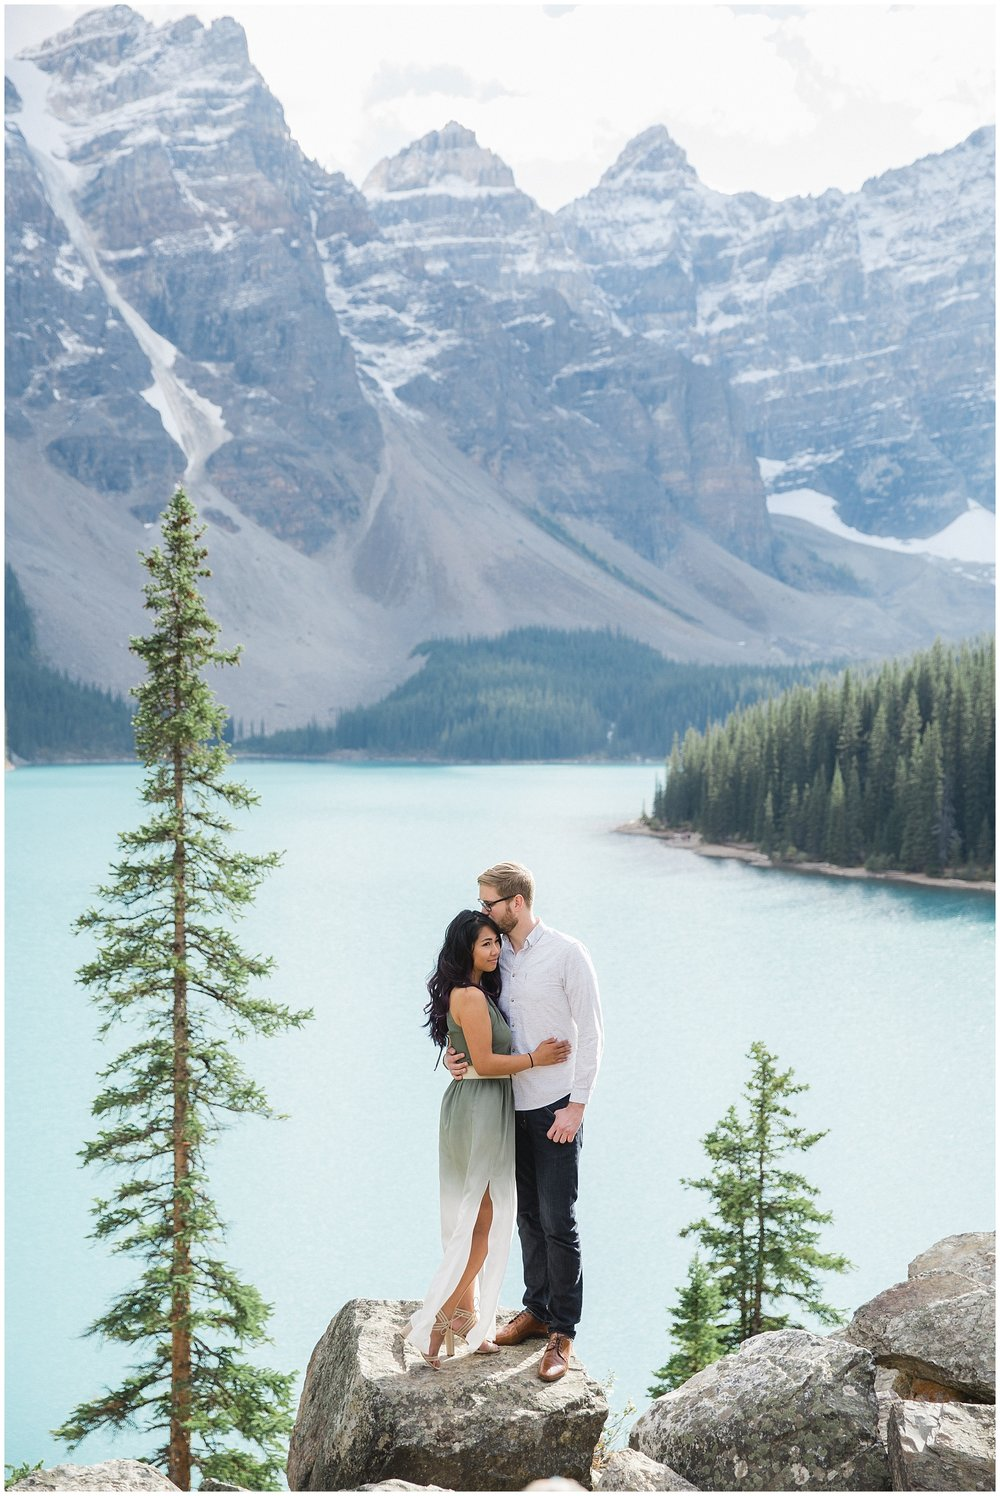 Lake_Moraine_Engagement_Photography_JandC_23_blog.jpg